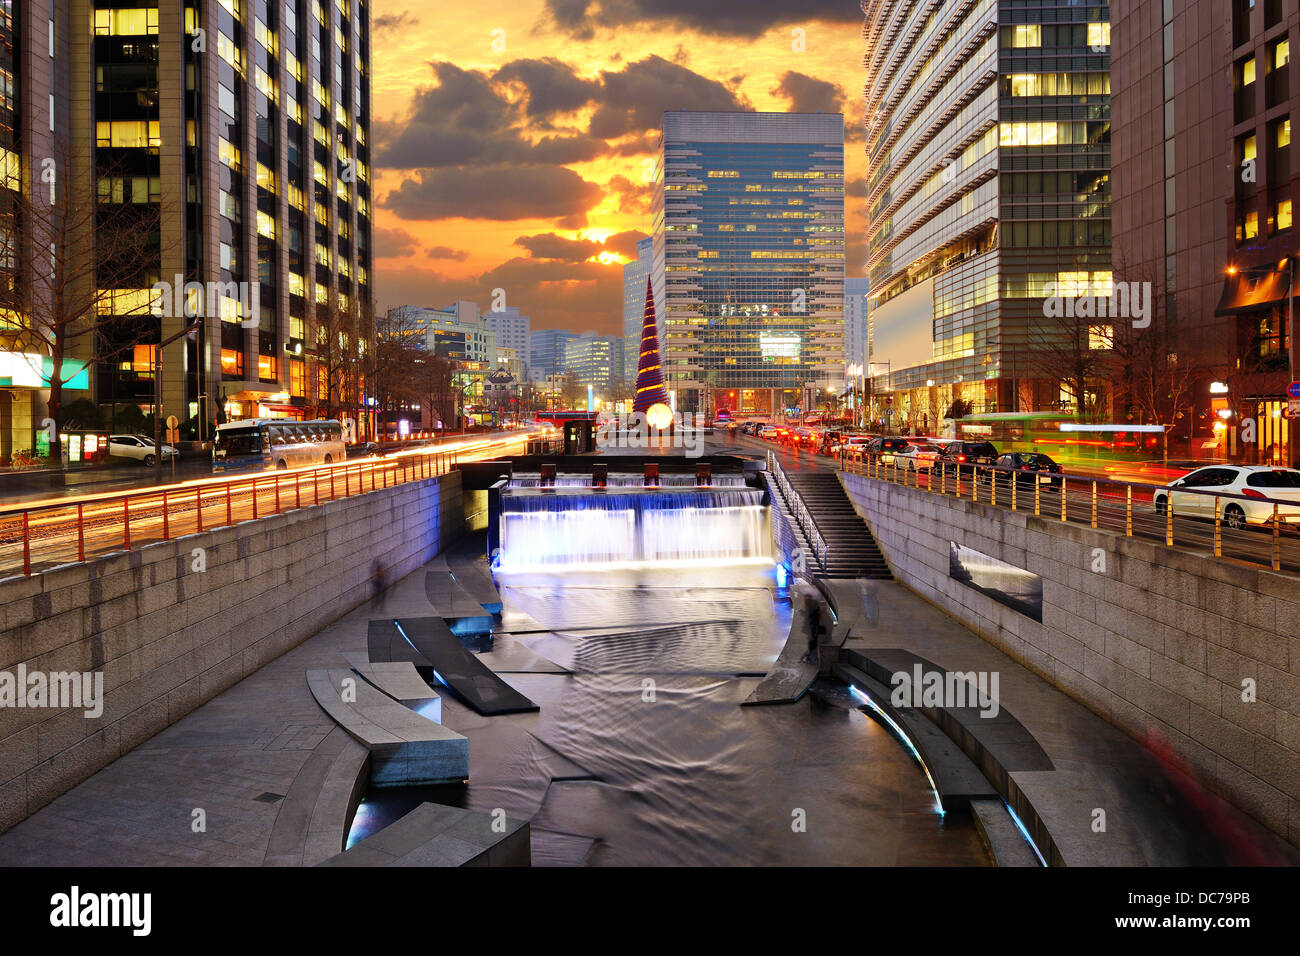 Cityscape of Seoul, South Korea at Cheonggyecheon Stream. - Stock Image